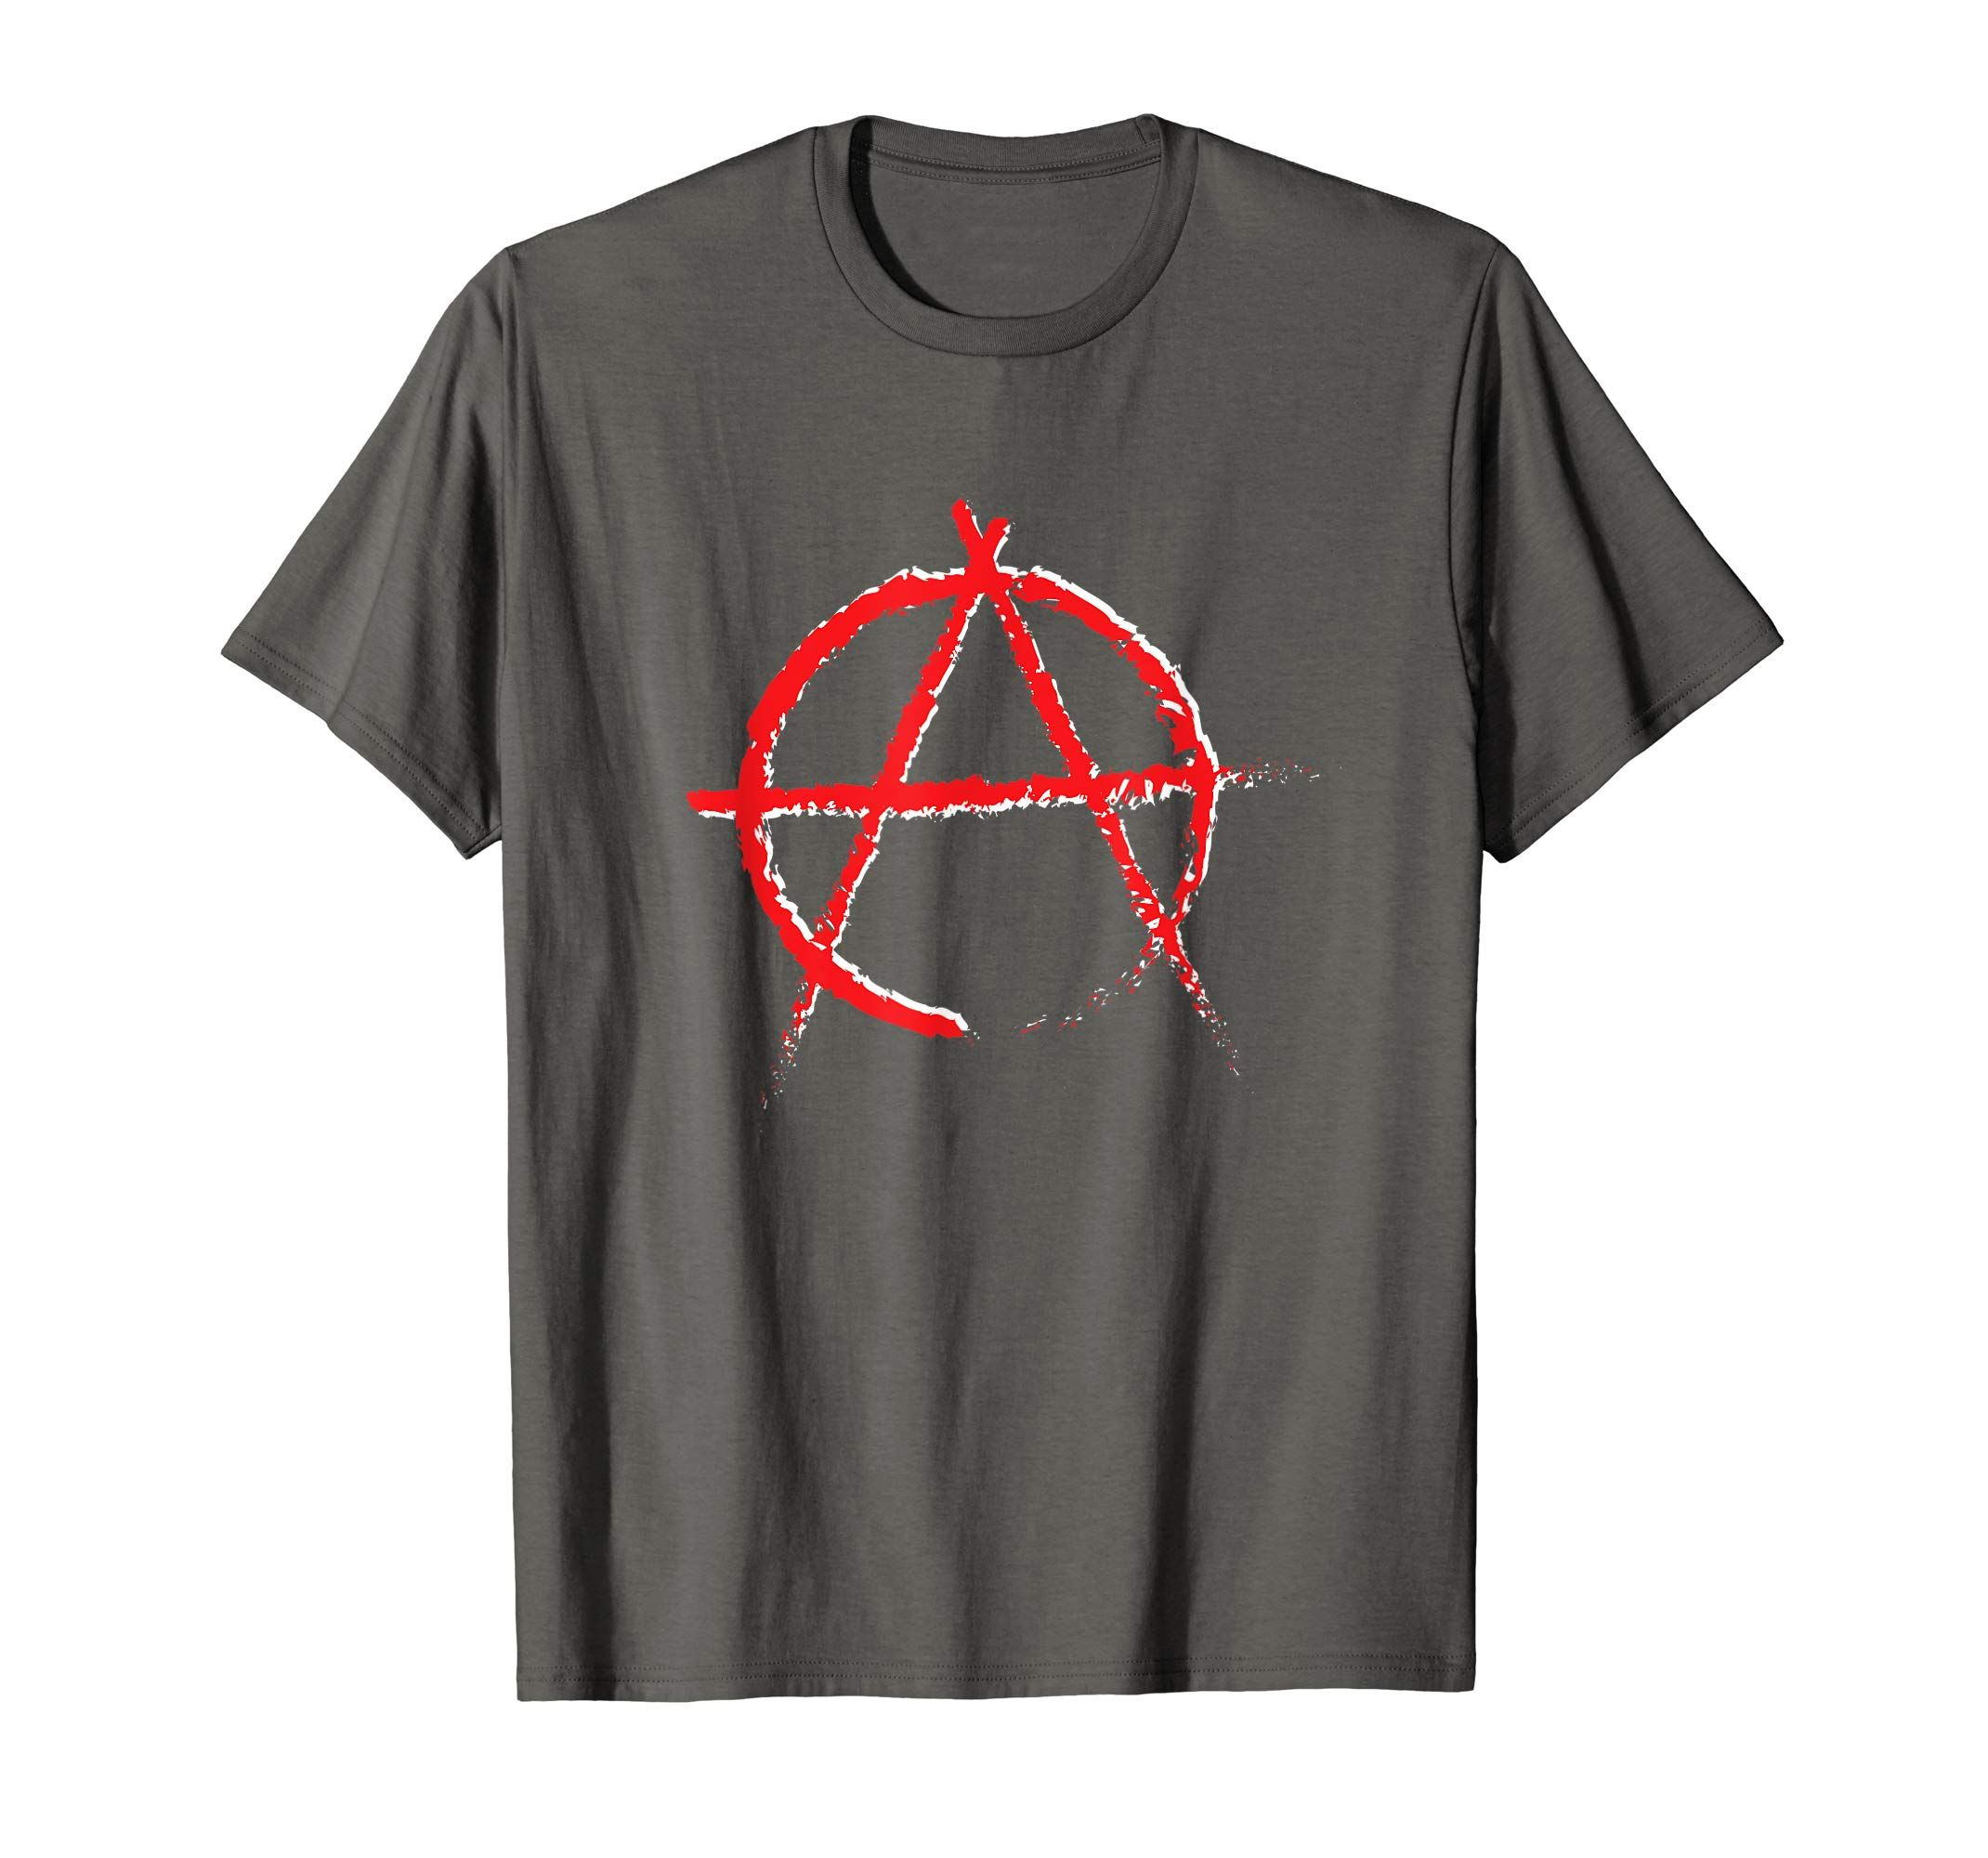 Anarchy Symbol T Shirt By Scar Design 5 Colors For Men Women And Youth Buy Yours On Amazon Store Now Refuse Resist Shirts Mens Shirts Mens Tshirts